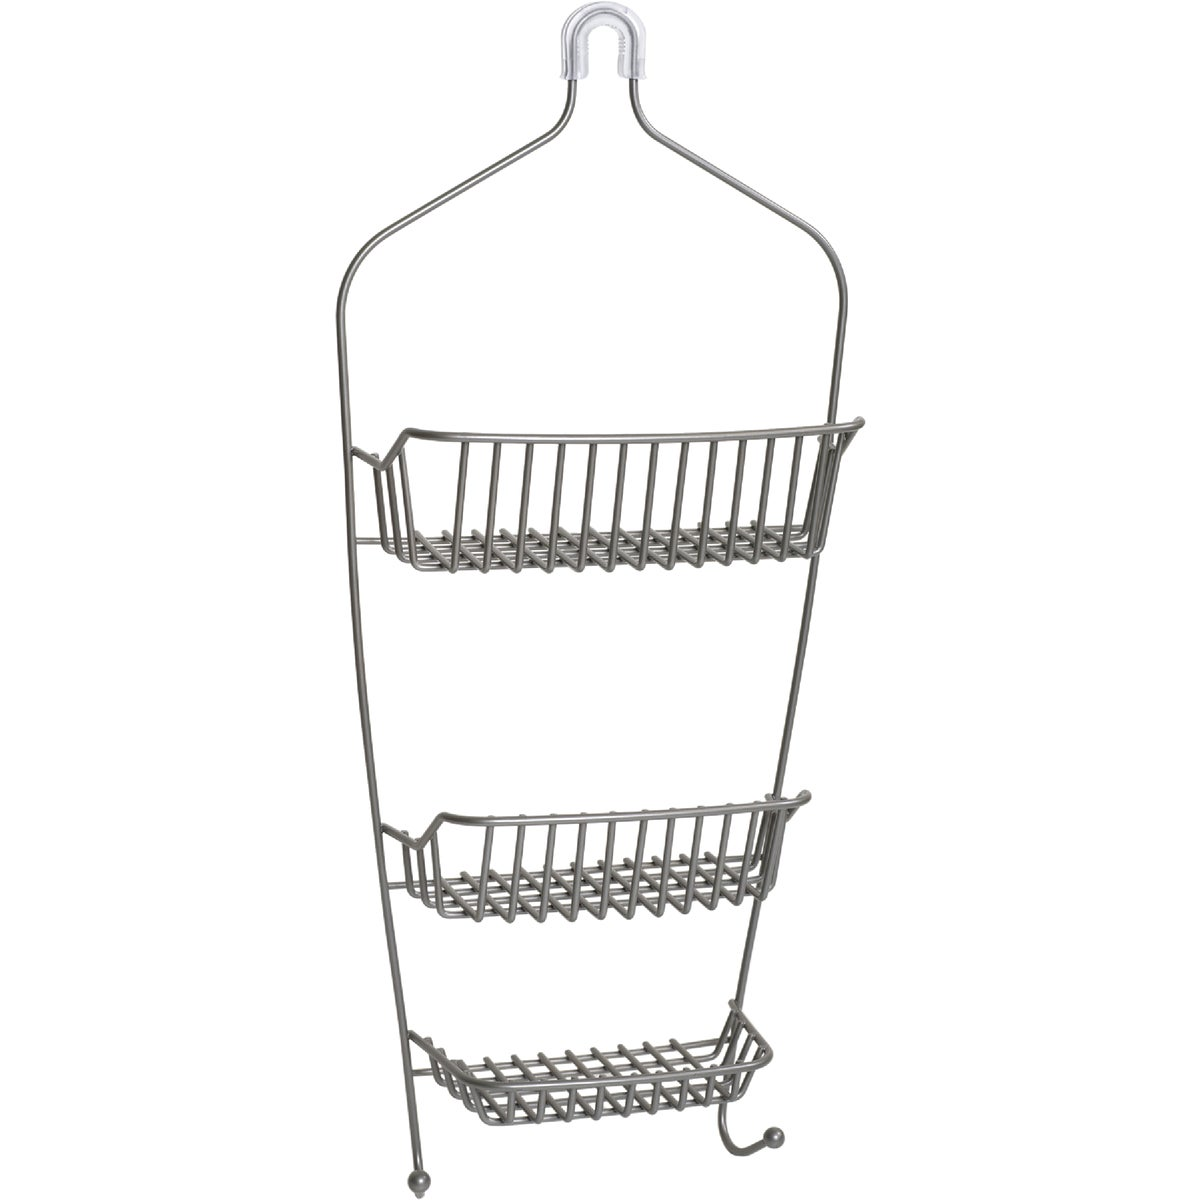 SN SHOWER HEAD CADDY - 7770PN by Zenith Prod Corp